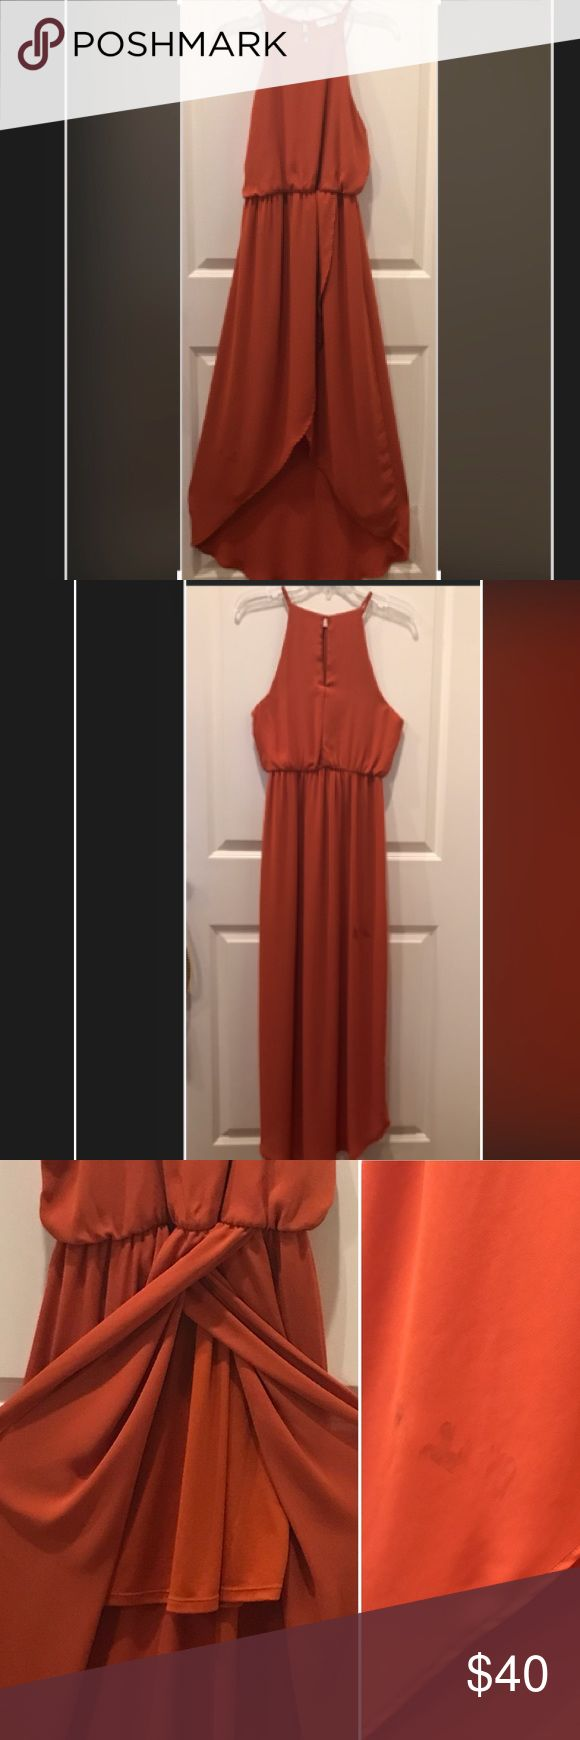 """High low dress When I wear this I feel like a supermodel! So elegant  & comfortable; w/slip underneath (see photos). 1 stain on front left of skirt & 2 stains on back skirt(see photos).  Not very noticeable bc dress flows.  Selling bc arms are too big for me.  Back:59""""long w/6"""" long keyhole opening w/top 1 button closure; 12"""" from top strap to bottom of arm opening; across arm to arm 18""""; top 13"""" Long; waist 13"""" across but stretches. Skirt @ shortest 23"""" long, slip:15"""" long from waist . 100%…"""